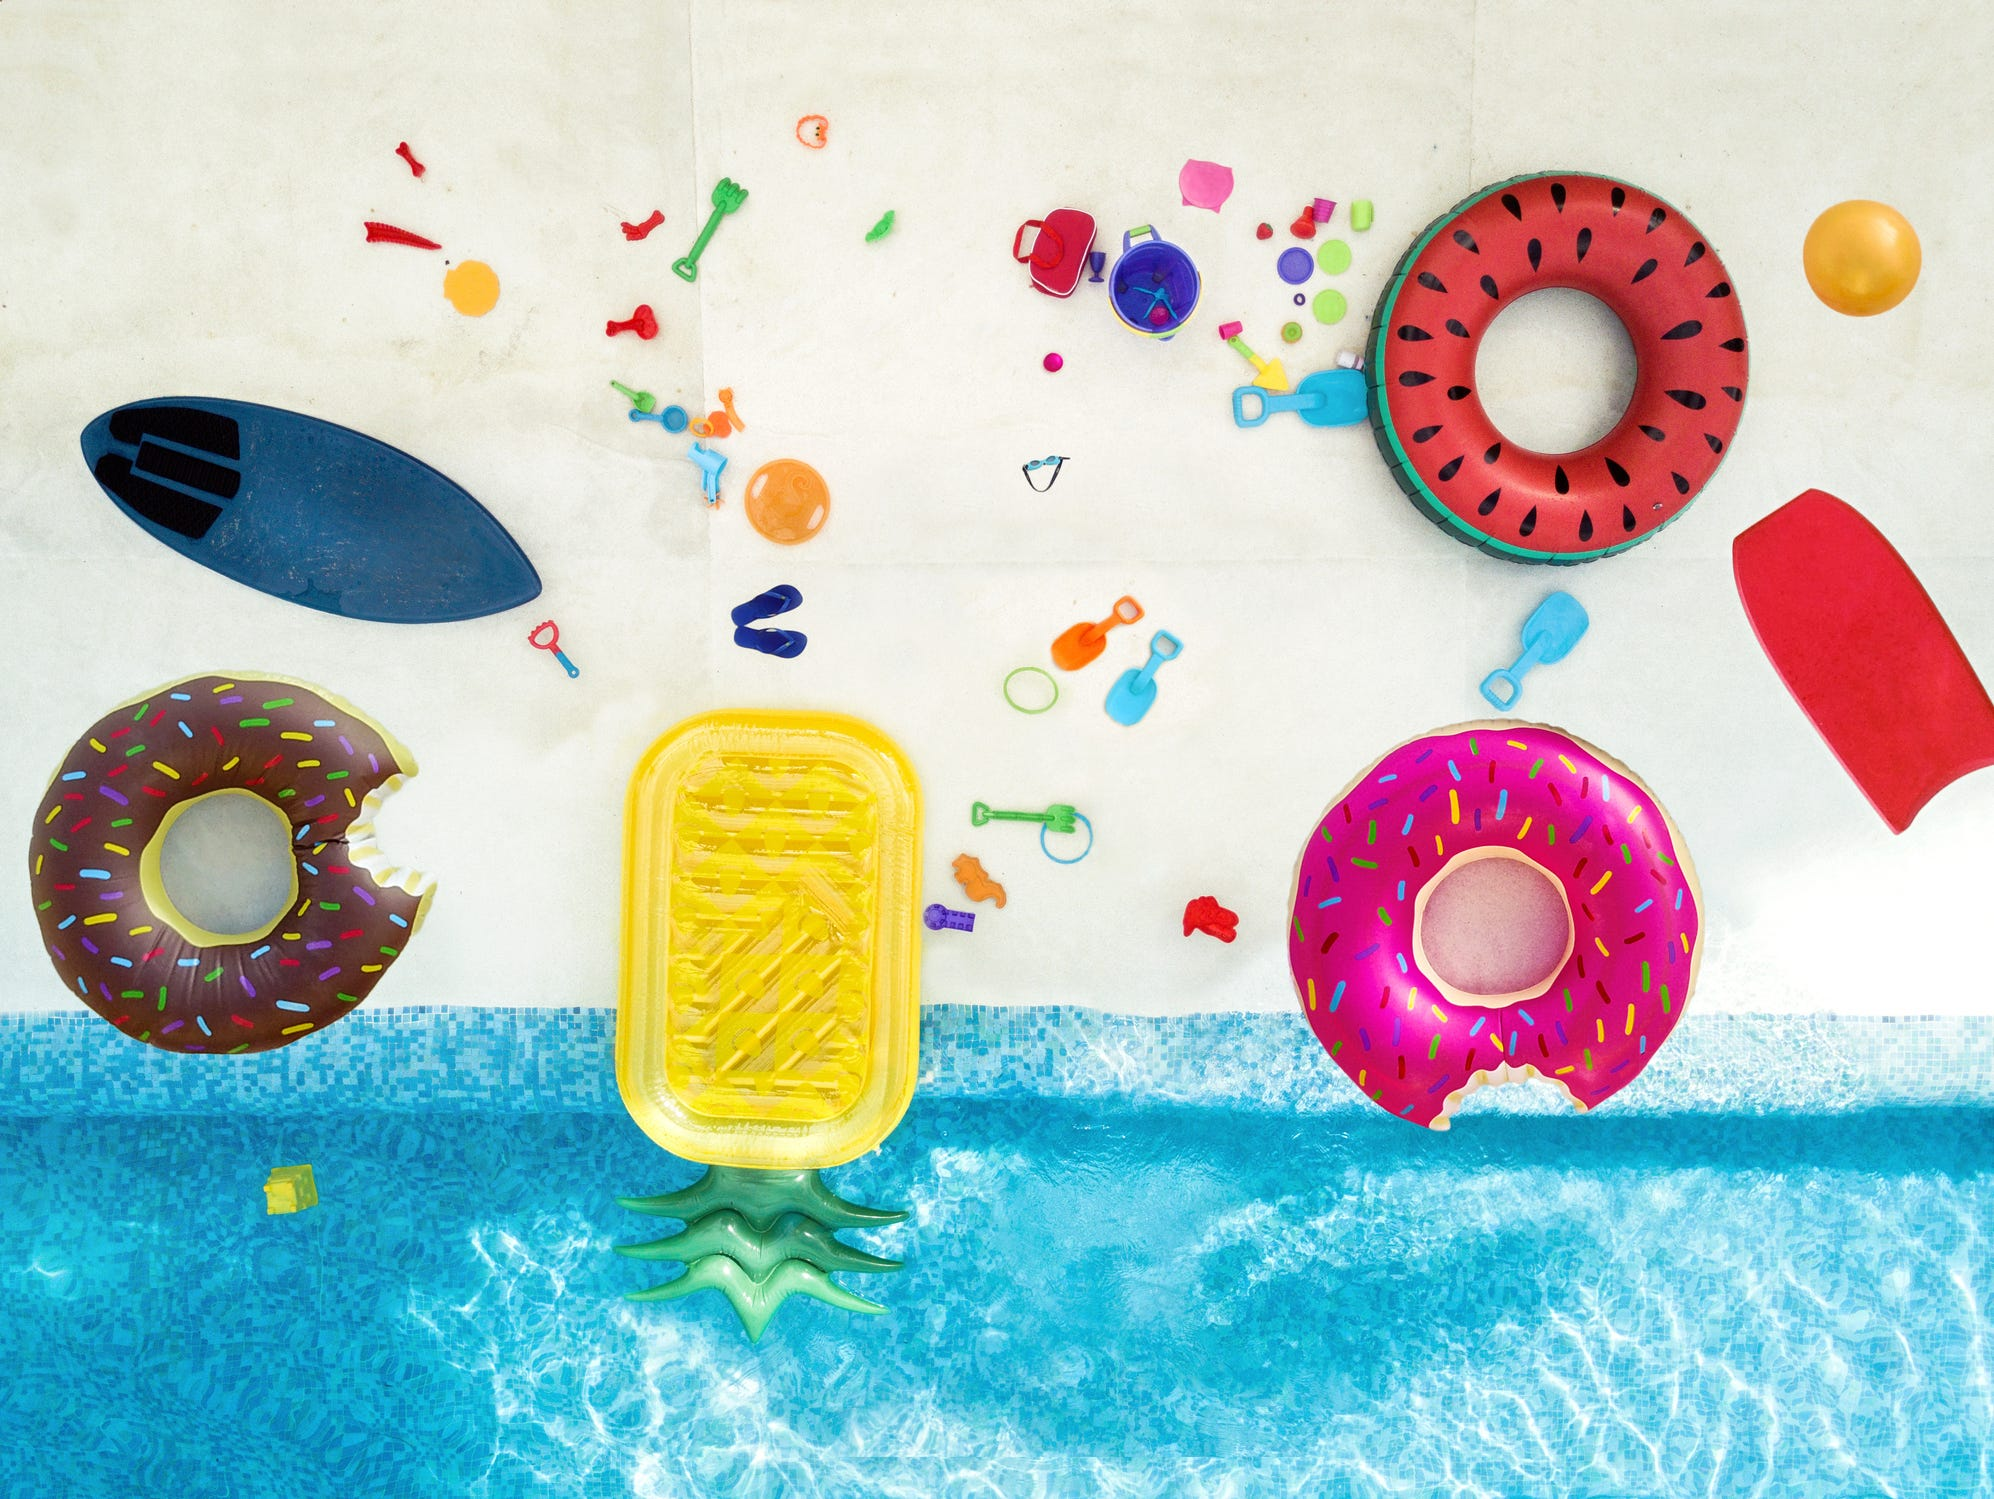 Get all the necessary toys, tools and treats for summer. Enter to win a $100 Target gift card. 5/1-5/31